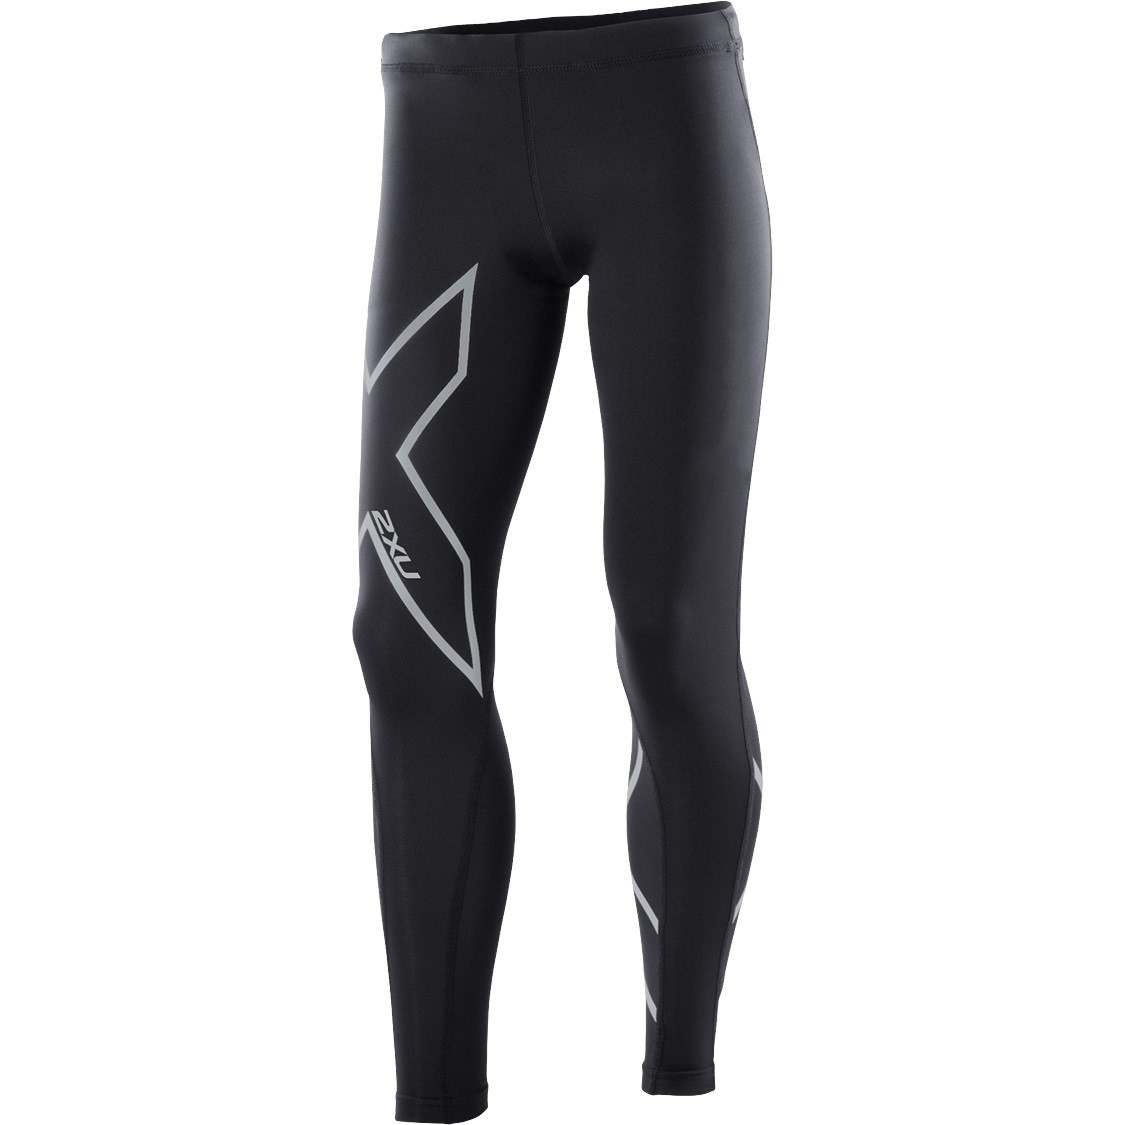 64a2f07e 2XU Kids Girls Compression Long Tights - Black/Silver | Sportitude